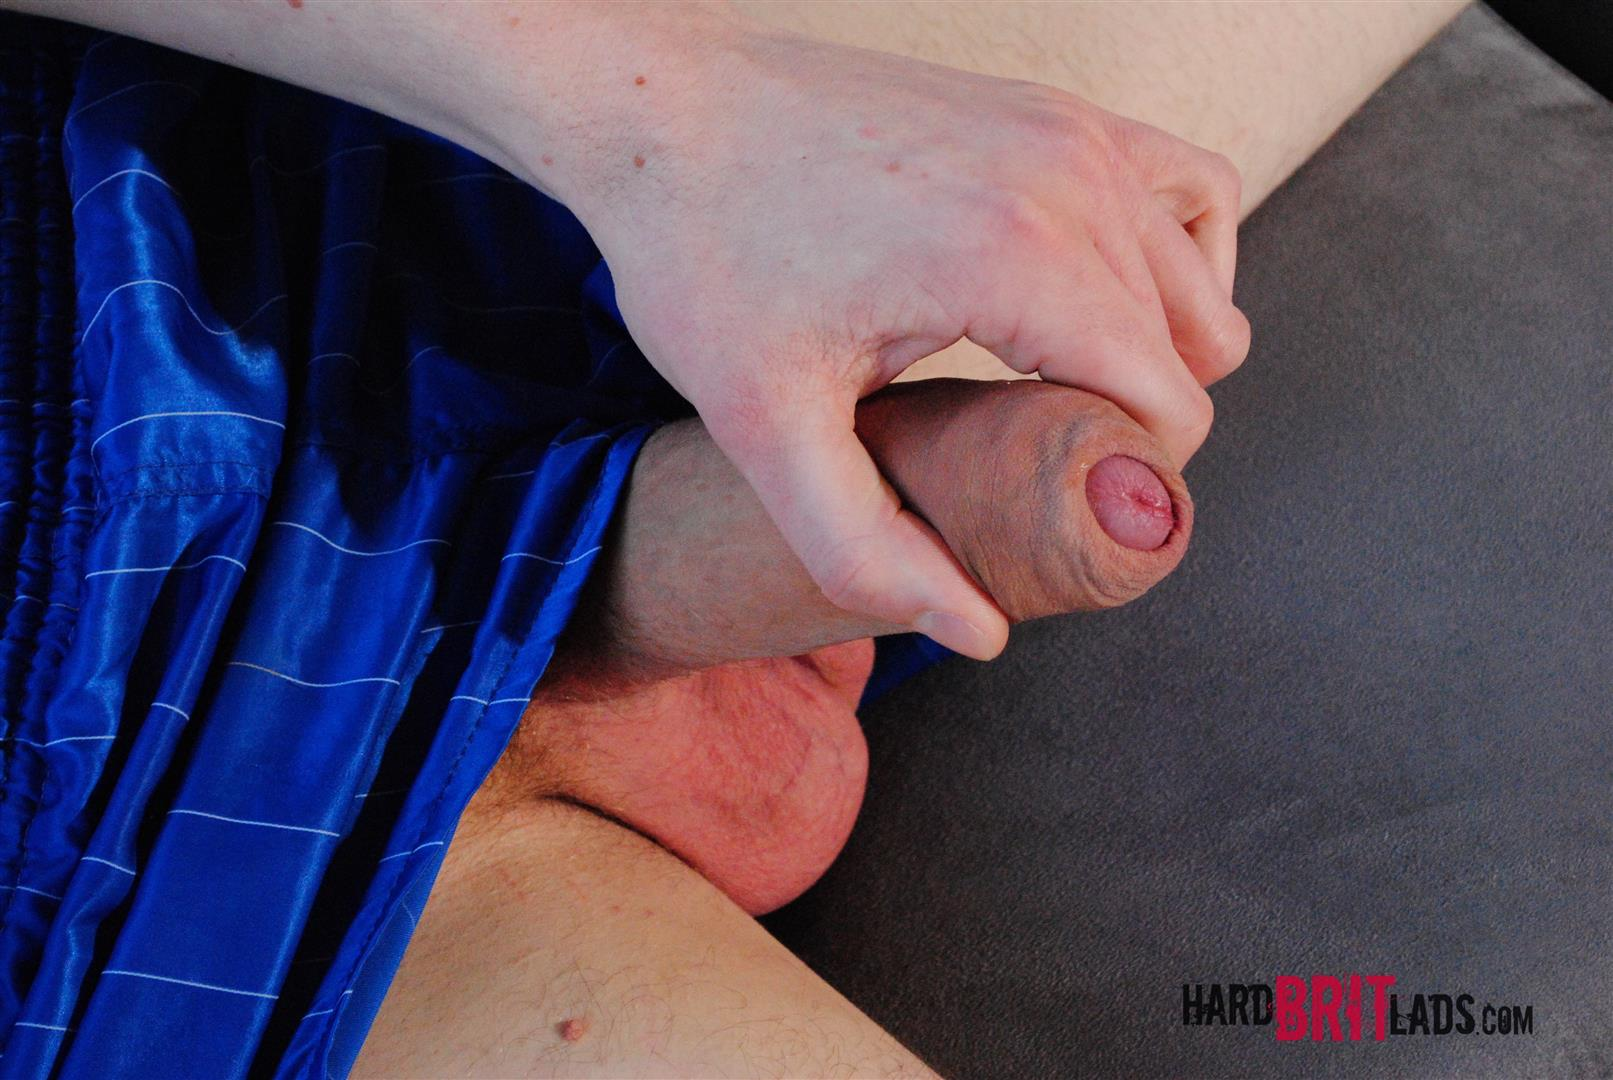 Hard-Brit-Lads-Blake-D-Big-Uncut-Cock-Masturbation-Amateur-Gay-Porn-07 British Jock Playing With His Massive Uncut Cock Squirts A Load